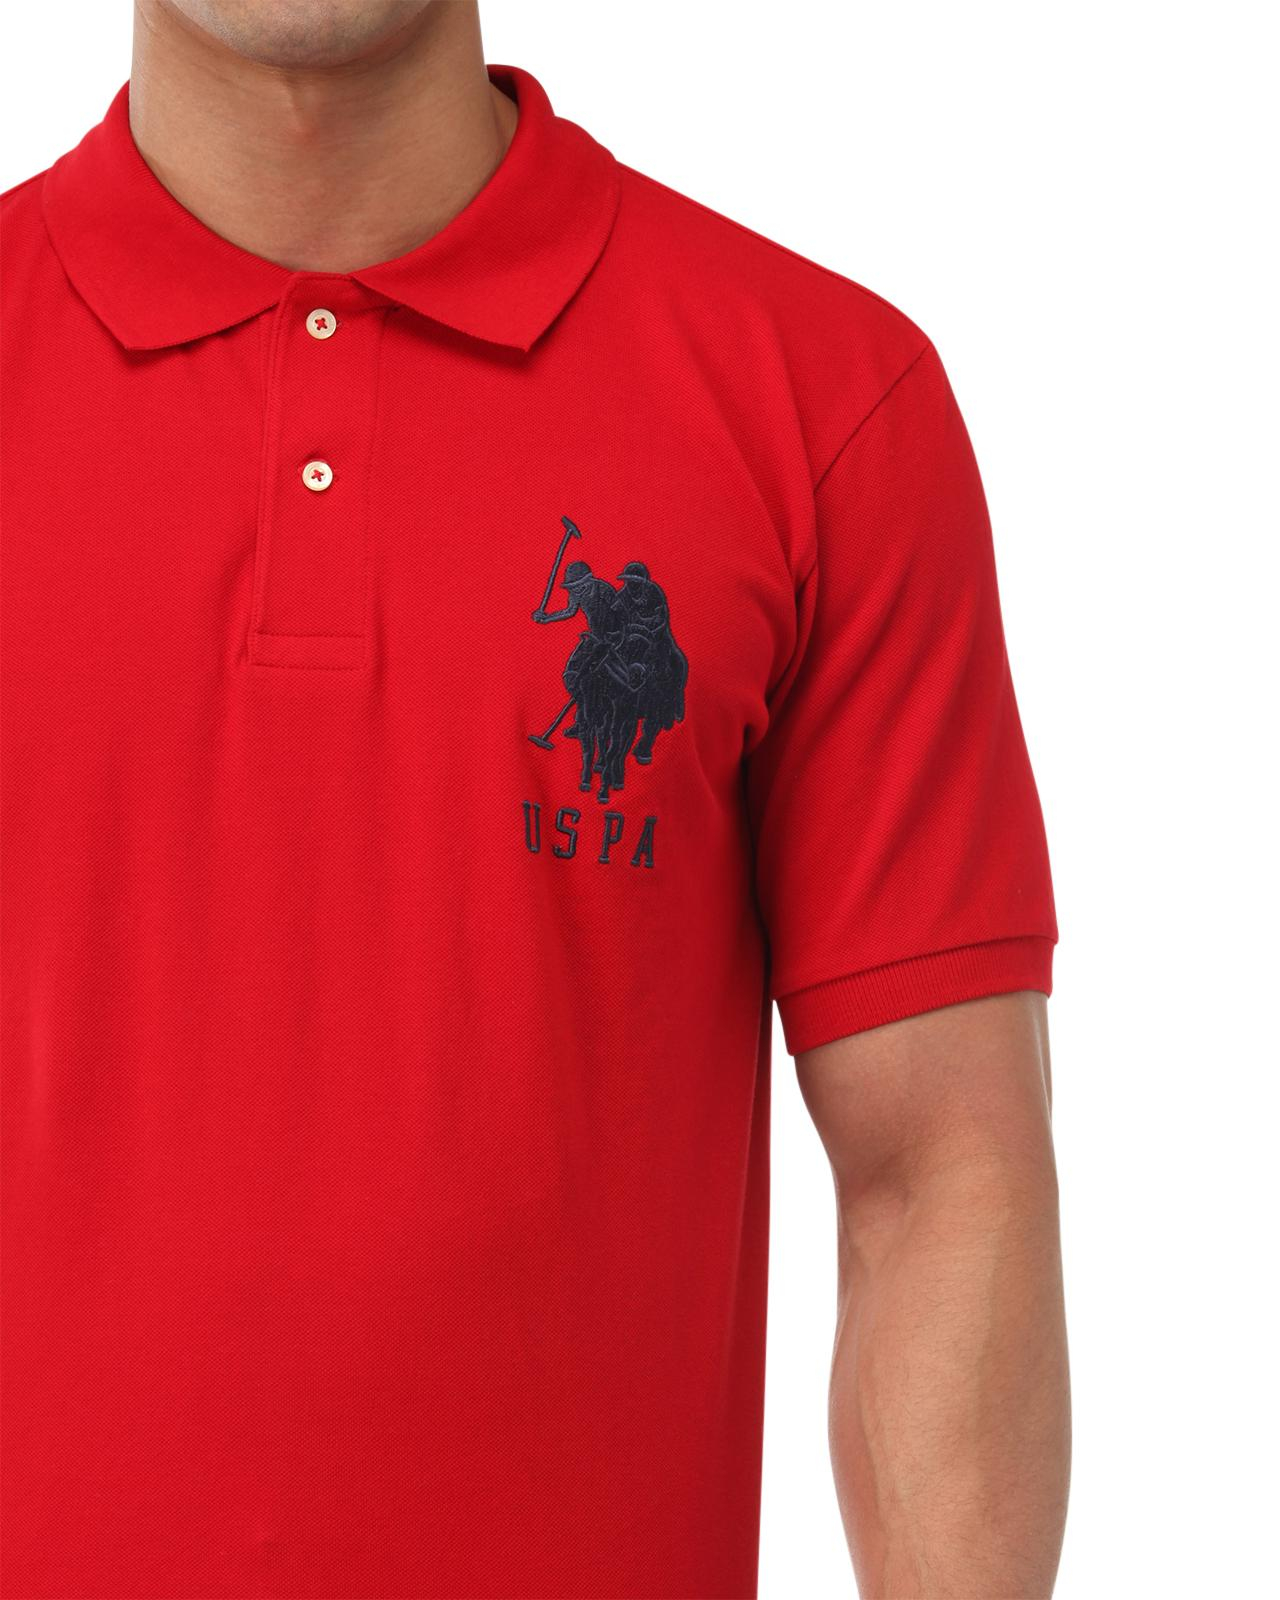 Lyst u s polo assn big logo polo shirt in red for men for Polo shirts with logos